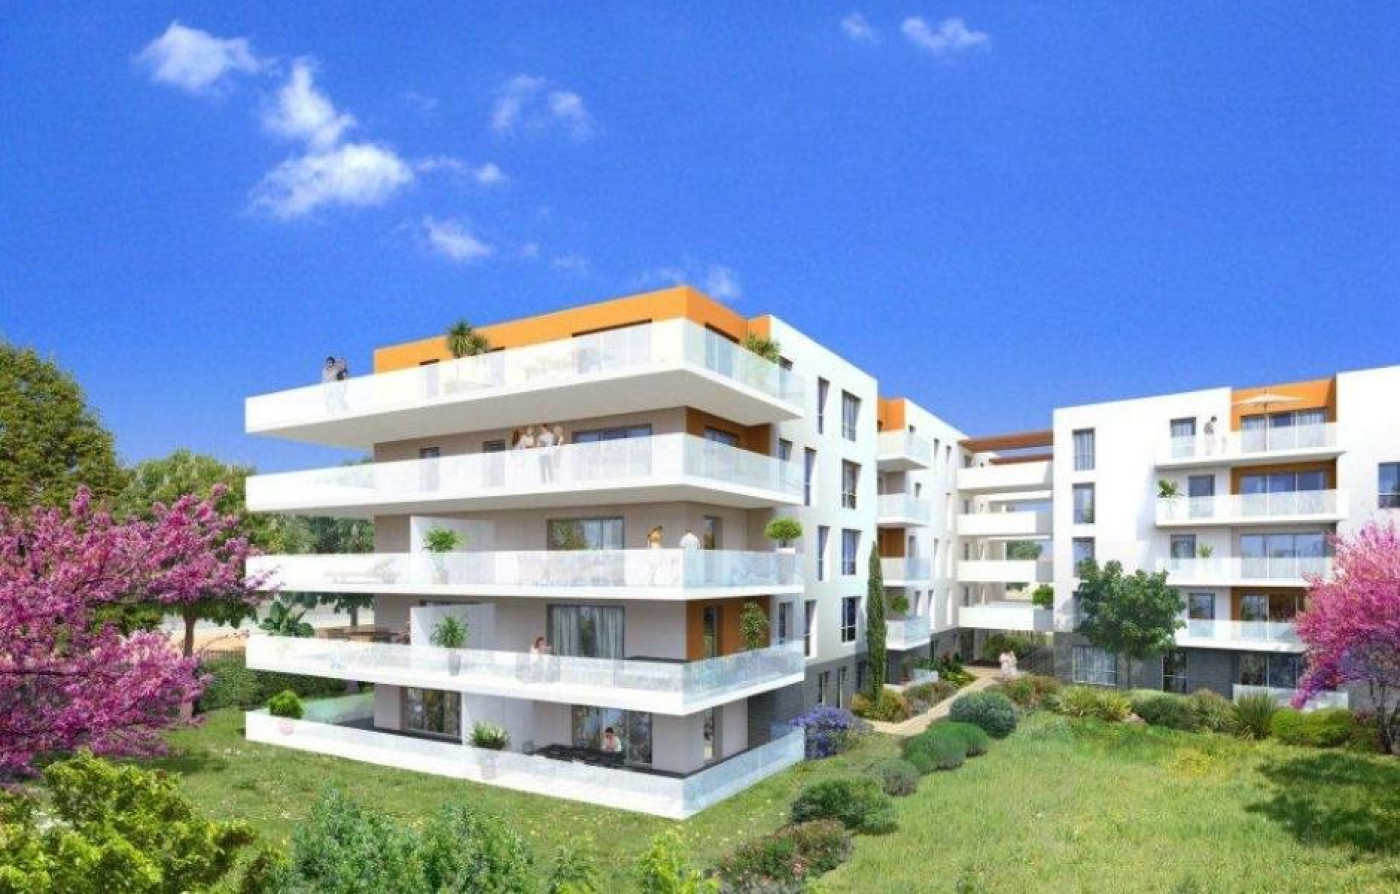 A vendre Montpellier 3420228795 S'antoni immobilier